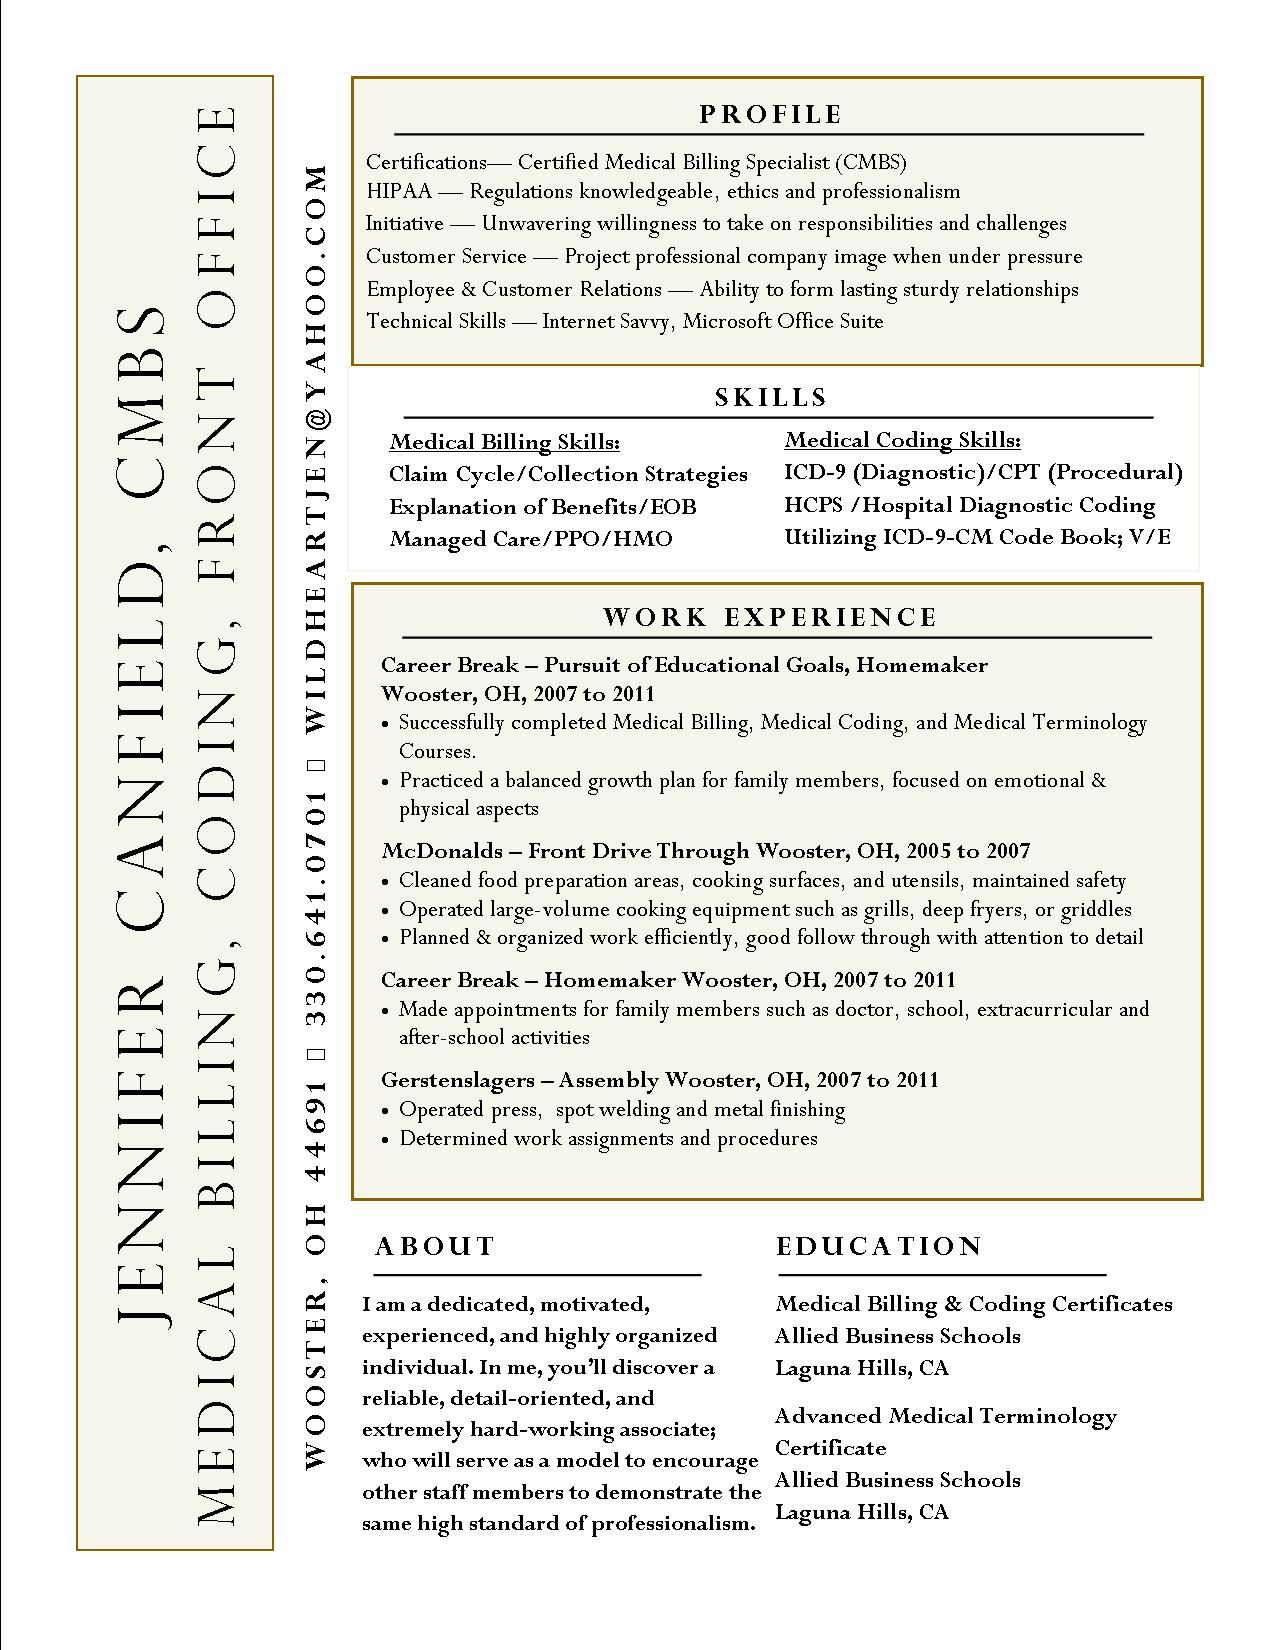 Medical Coding Resume Samples Interesting Resume Idea  Not Sure I Like The Name On The Side